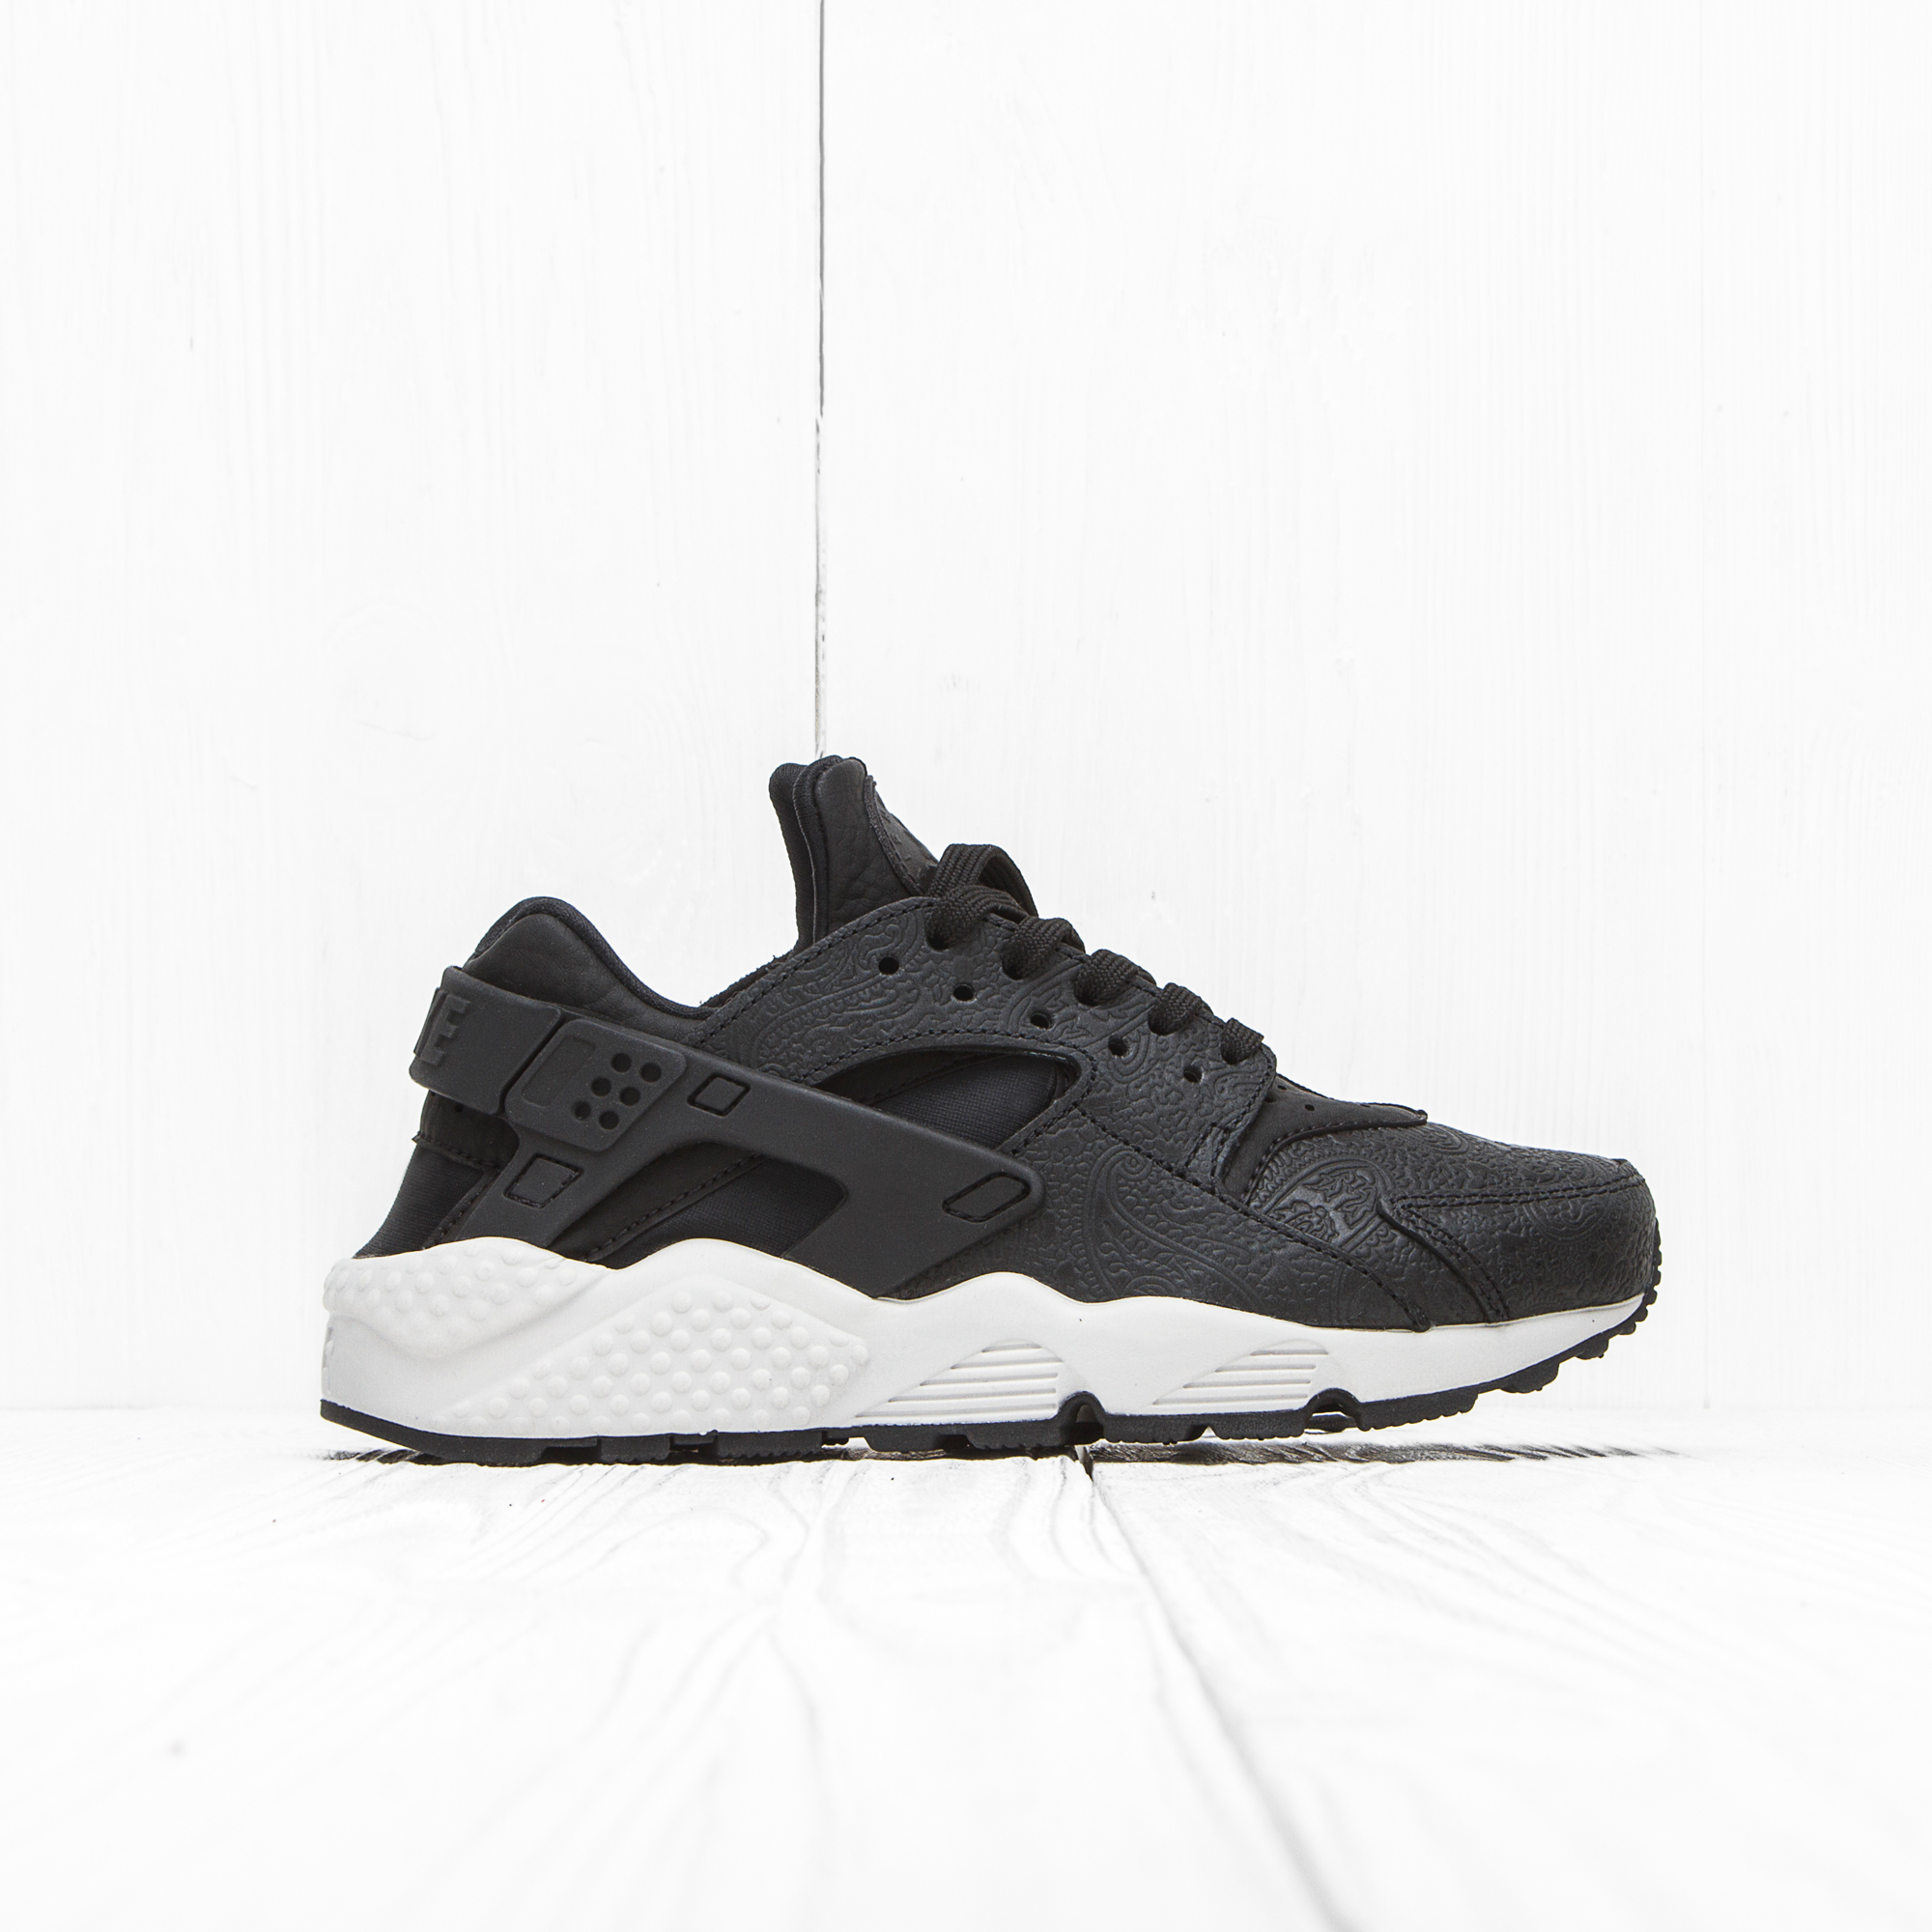 Кроссовки Nike W AIR HUARACHE RUN PRM Black/Black-White